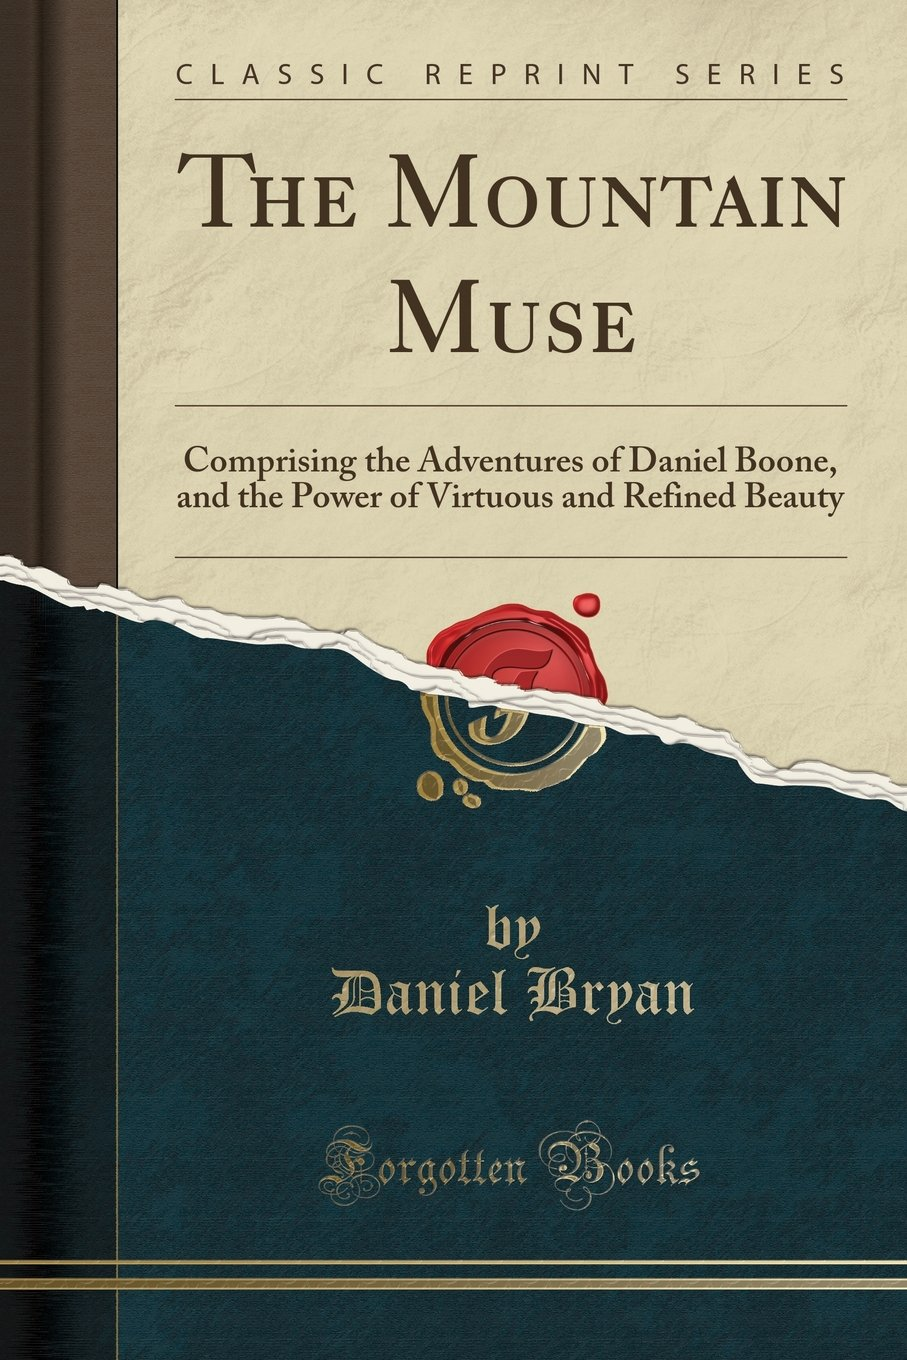 The Mountain Muse: Comprising the Adventures of Daniel Boone, and the Power of Virtuous and Refined Beauty (Classic Reprint) pdf